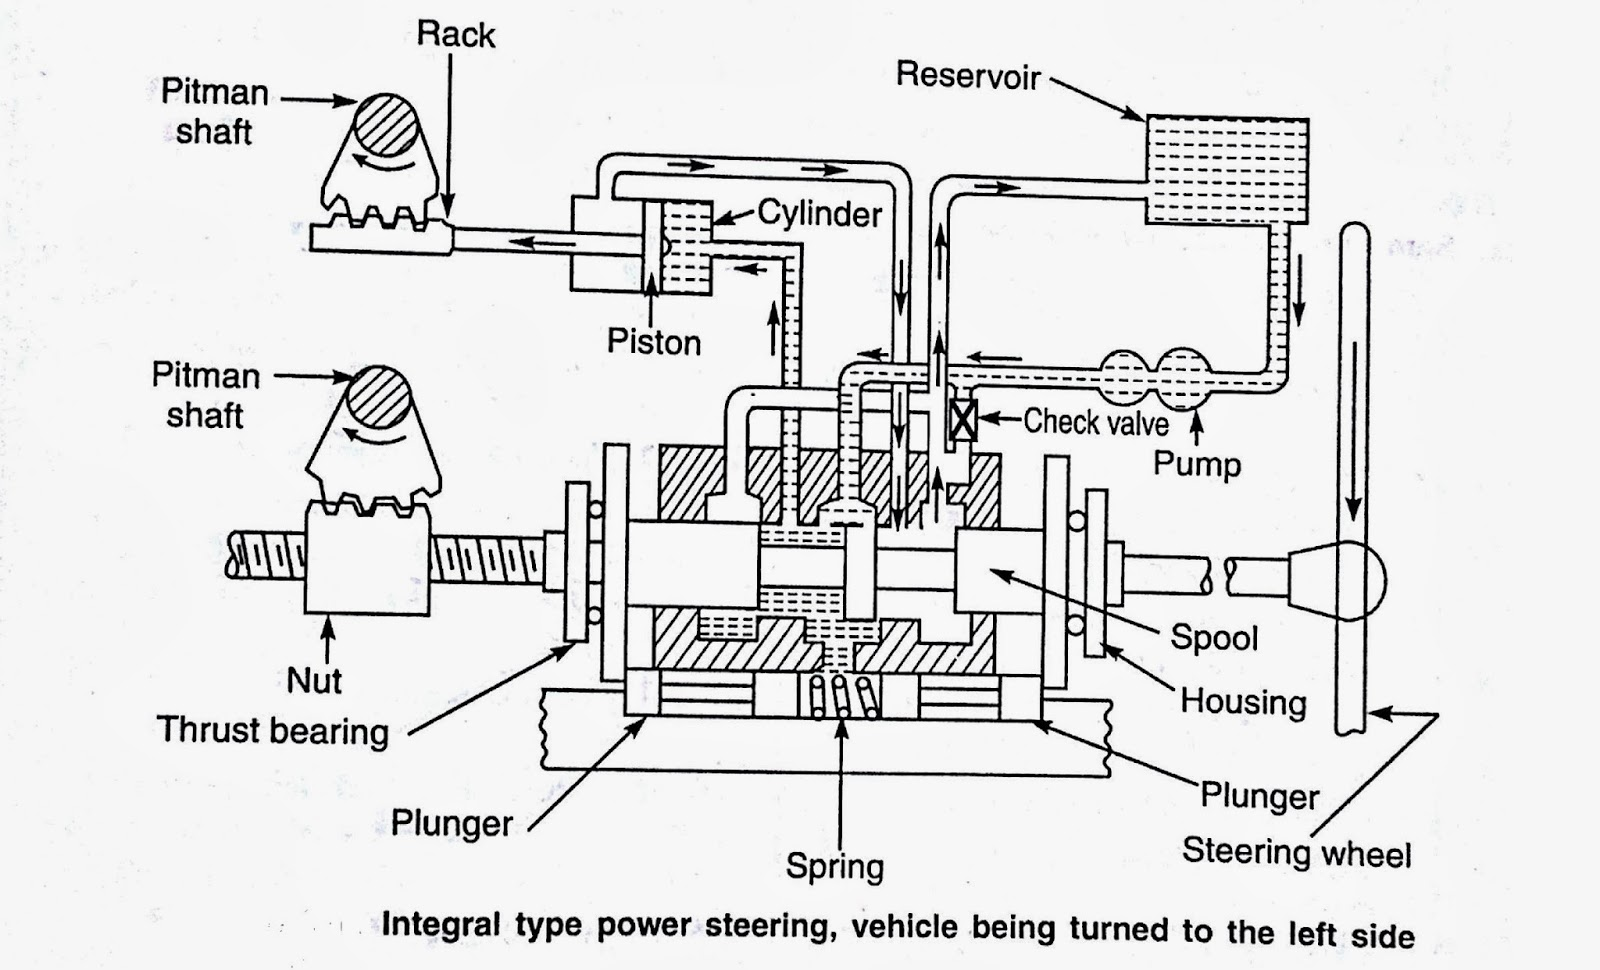 Royalmechtech Types And Working Of Power Steering